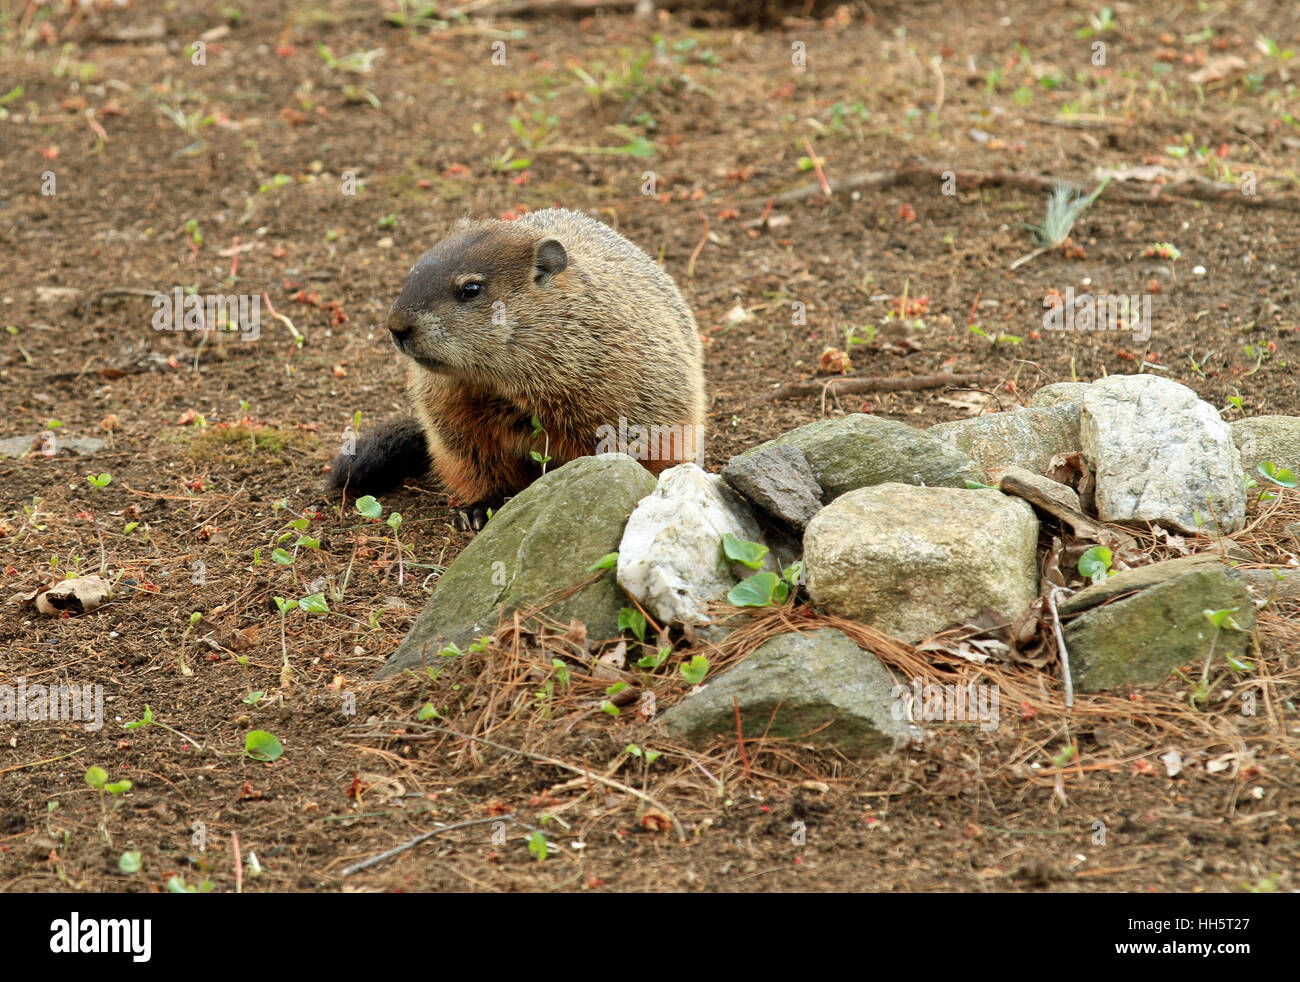 Groundhog (Marmota monax) searching for food in early Spring - Stock Image